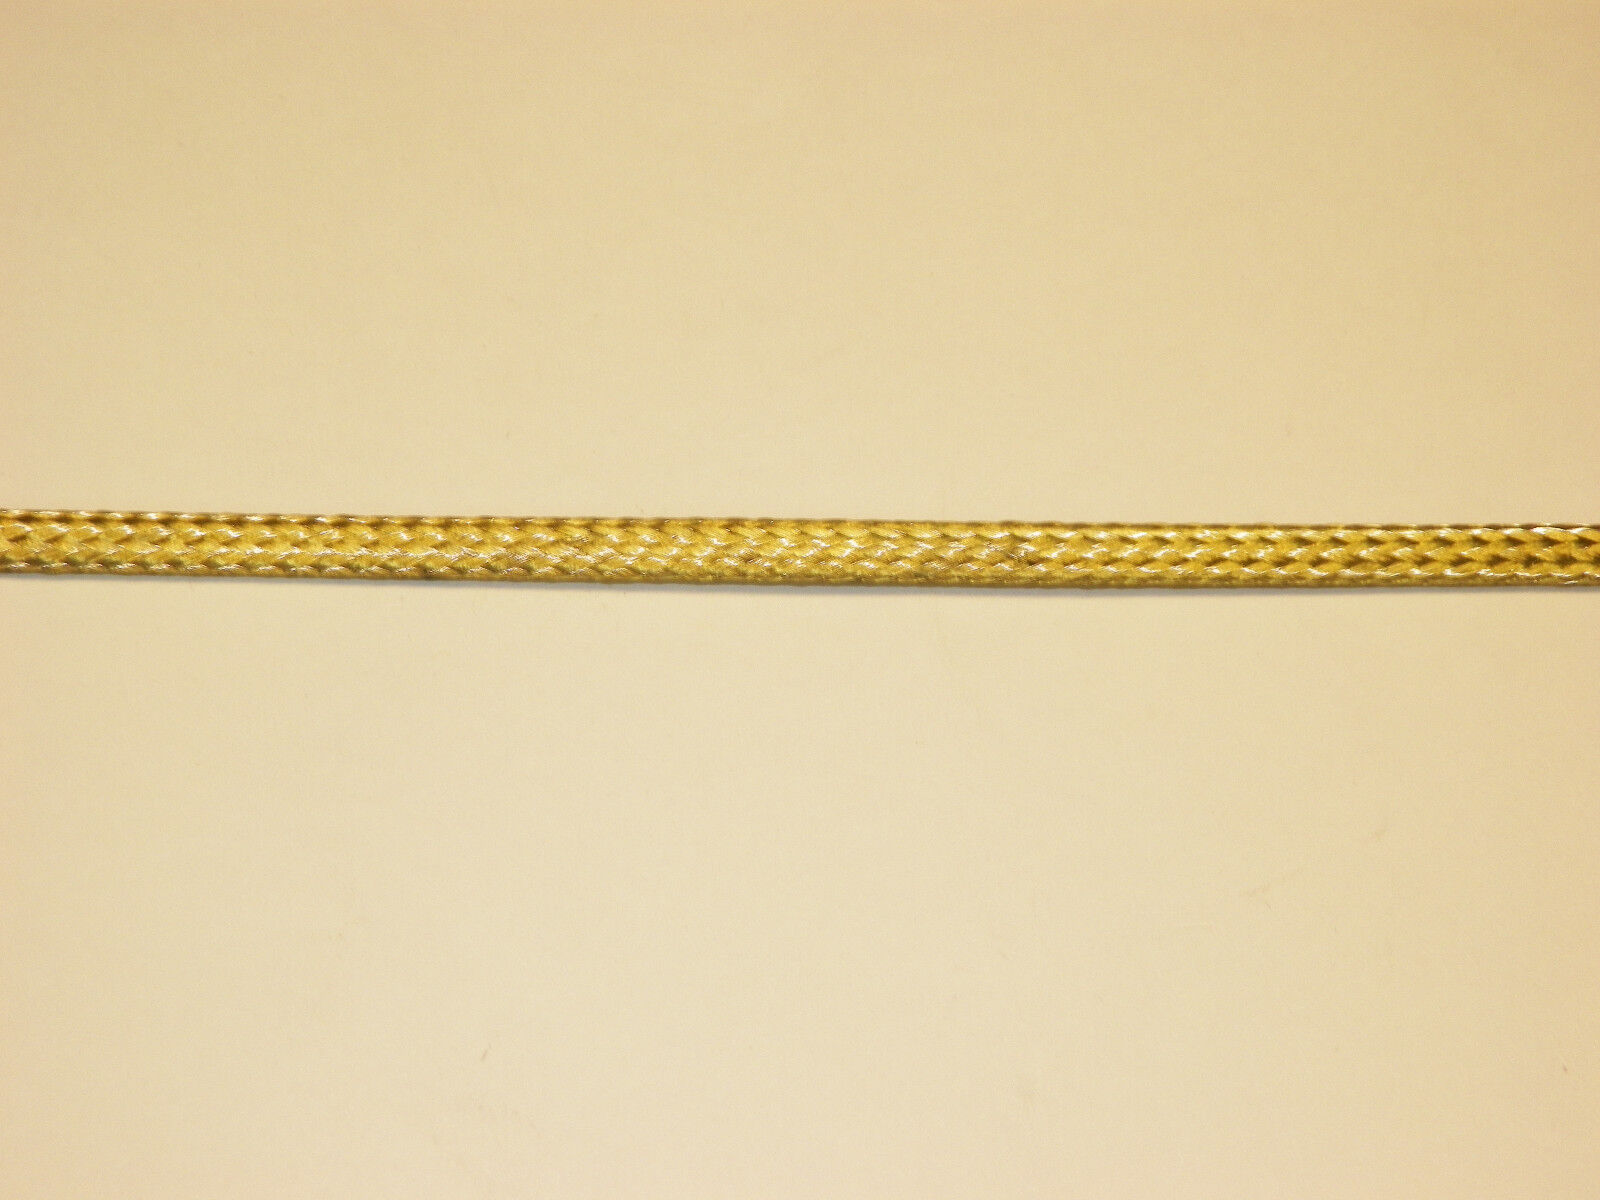 Braided Brass Expandable Flex Sleeve Wiring Harness Loom Flexable Sleeves 3 Of 8 Wire Cover